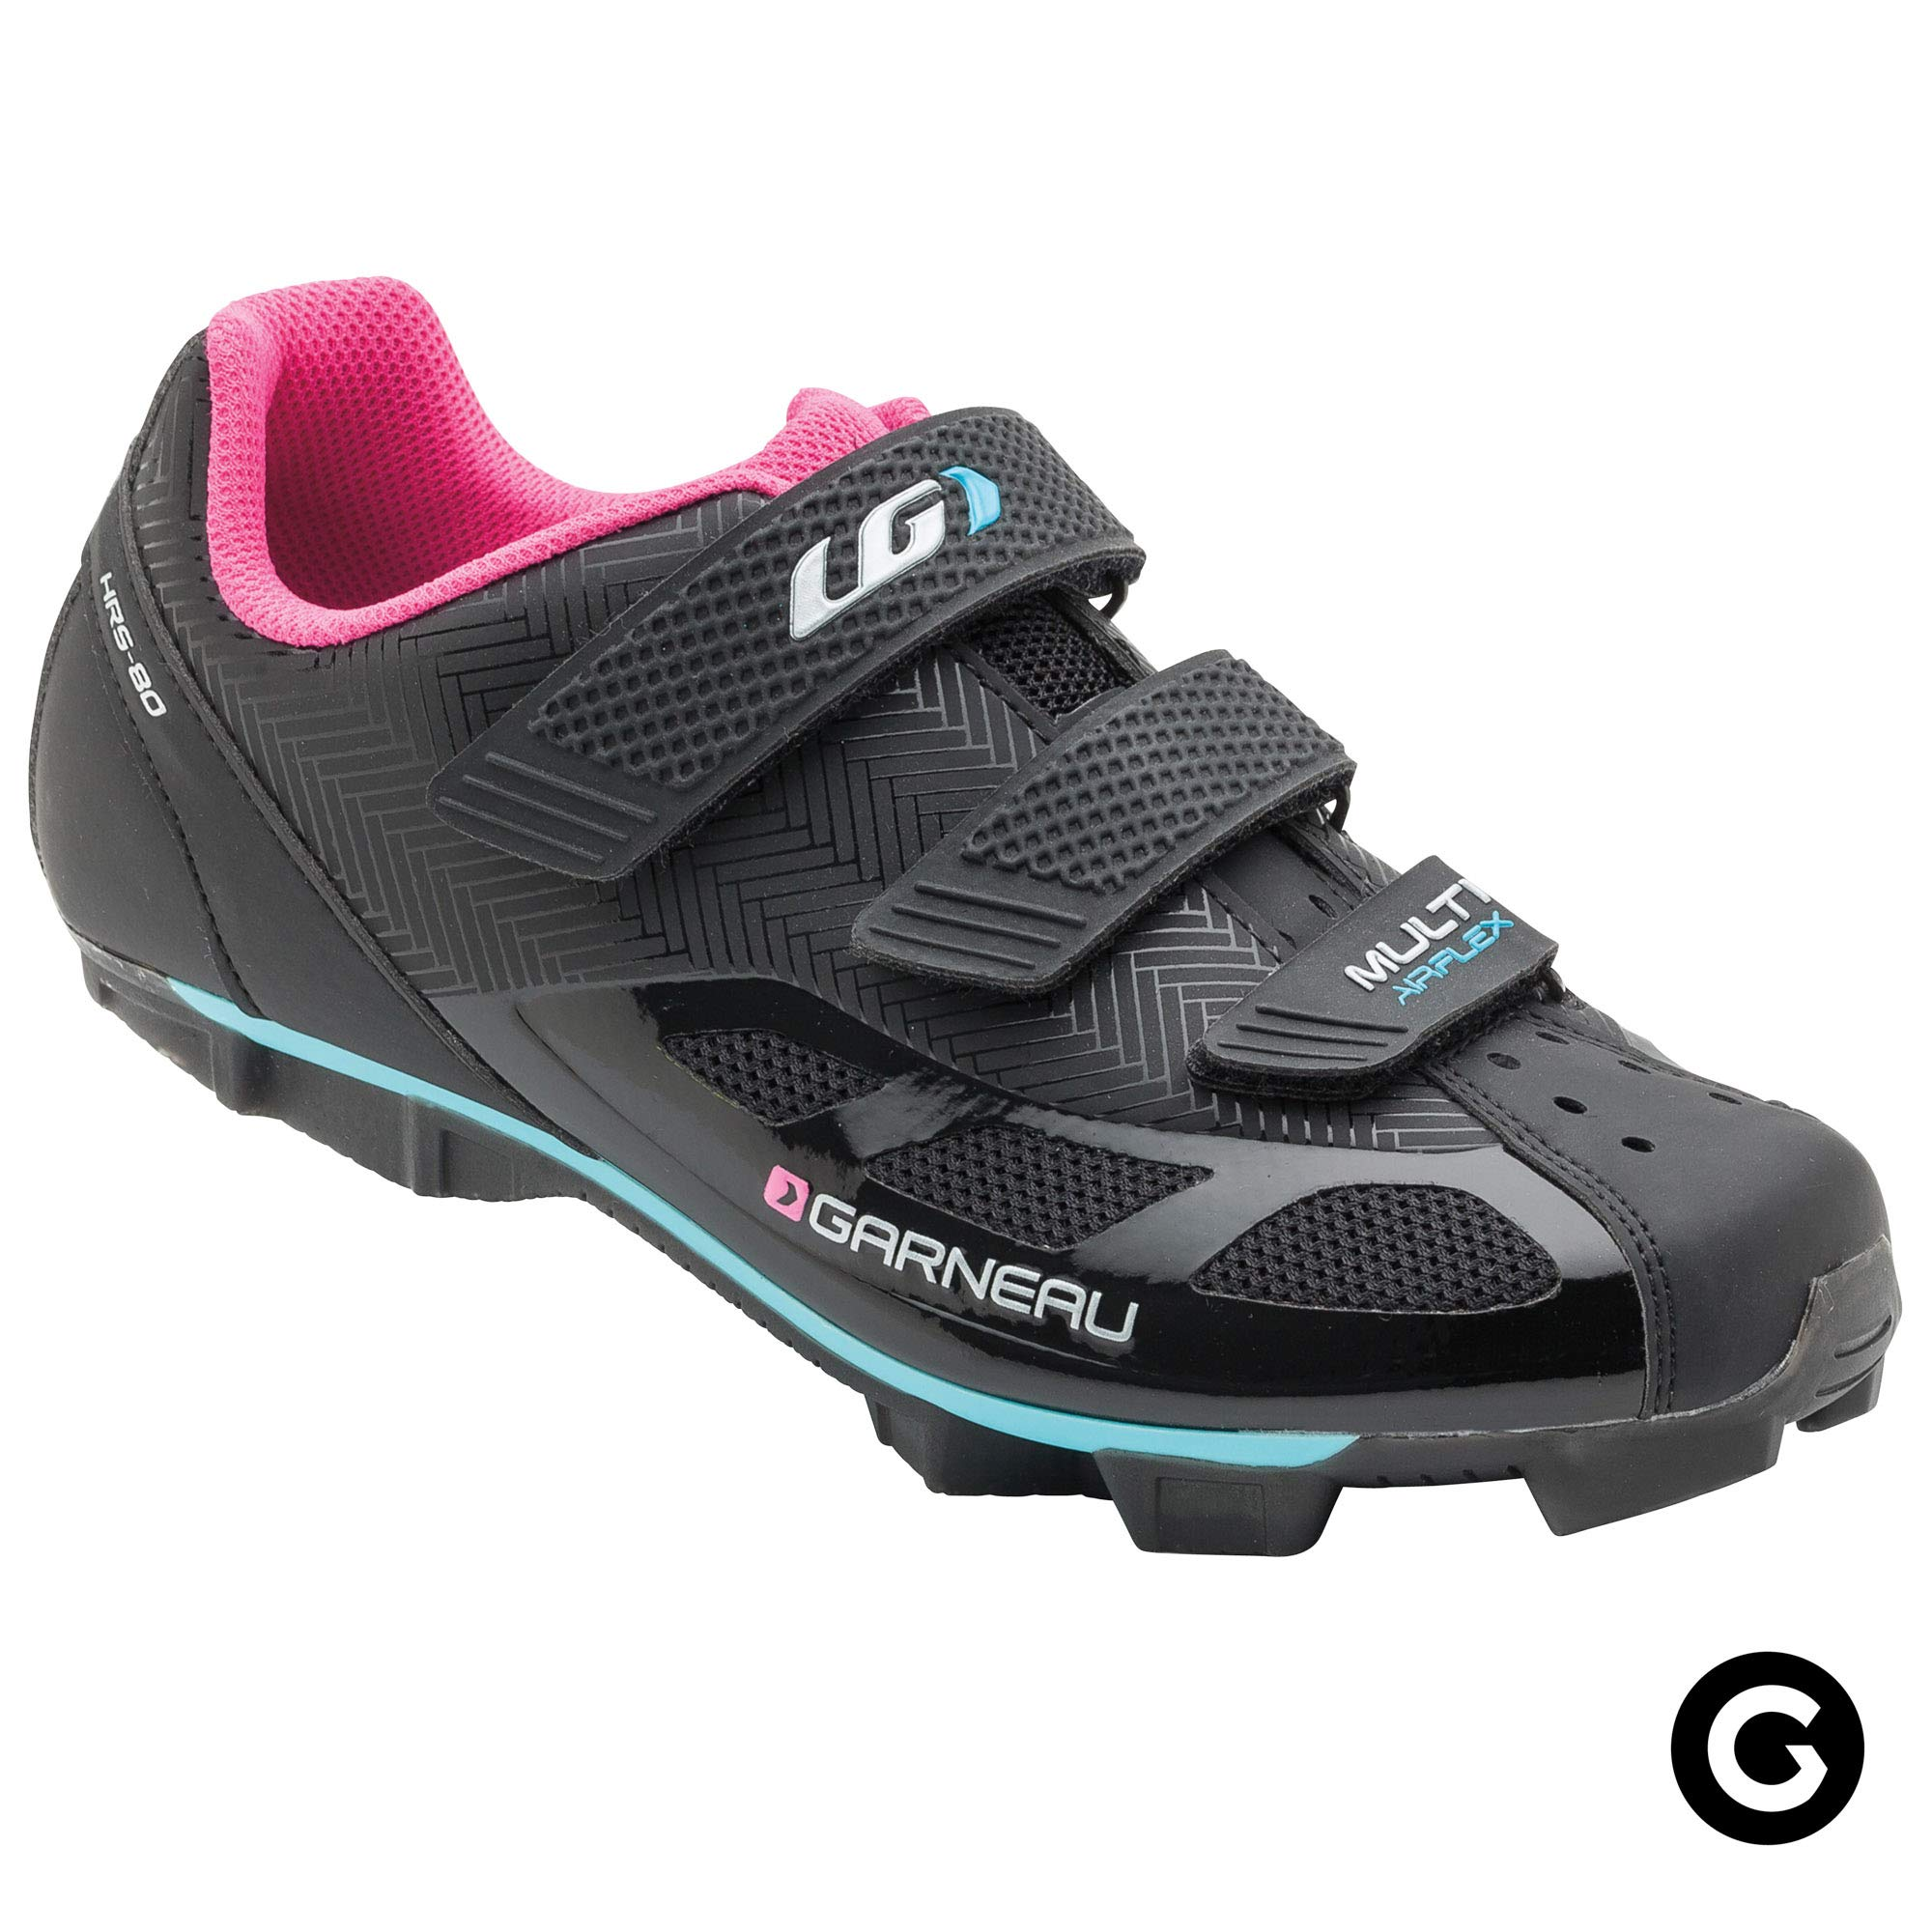 Louis Garneau Women's Multi Air Flex Bike Shoes for Indoor Cycling, Commuting and MTB, SPD Cleats Compatible with MTB Pedals, Black/Pink, US (6), EU (36)